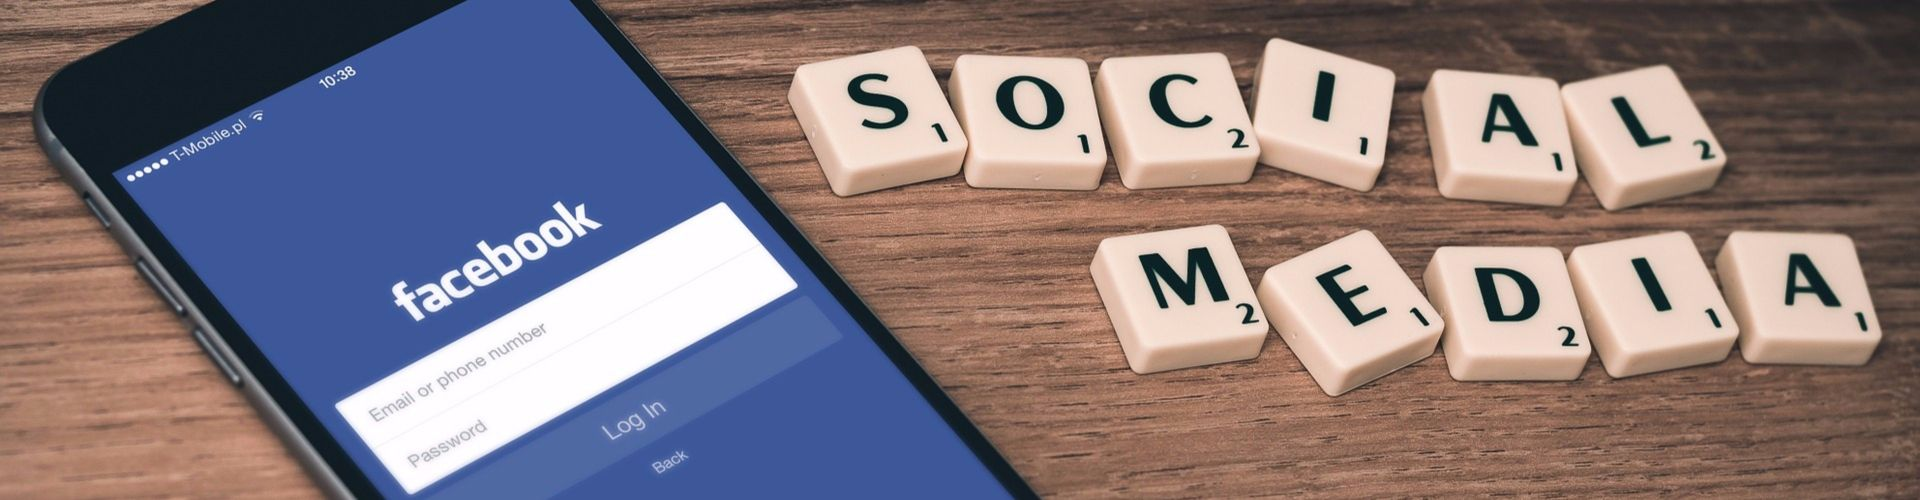 7 facebook marketing mistakes your small business should avoid